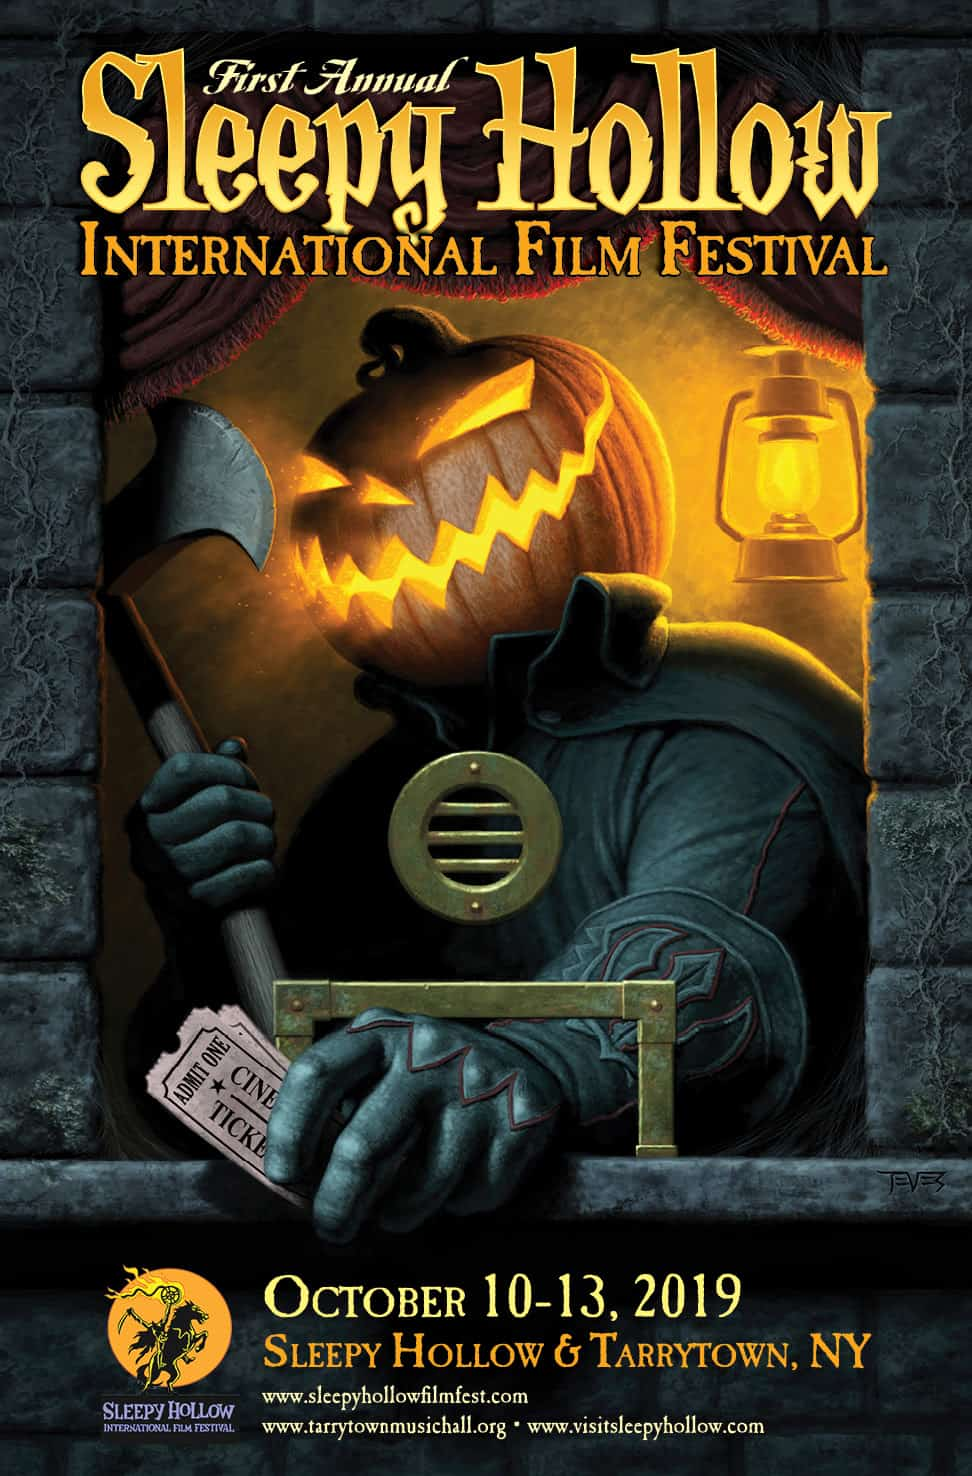 Sleepy Hollow International Film Fest - FESTIVAL INTERNACIONAL DE FILMES SLEEPY HOLLOW estreia estréia completa